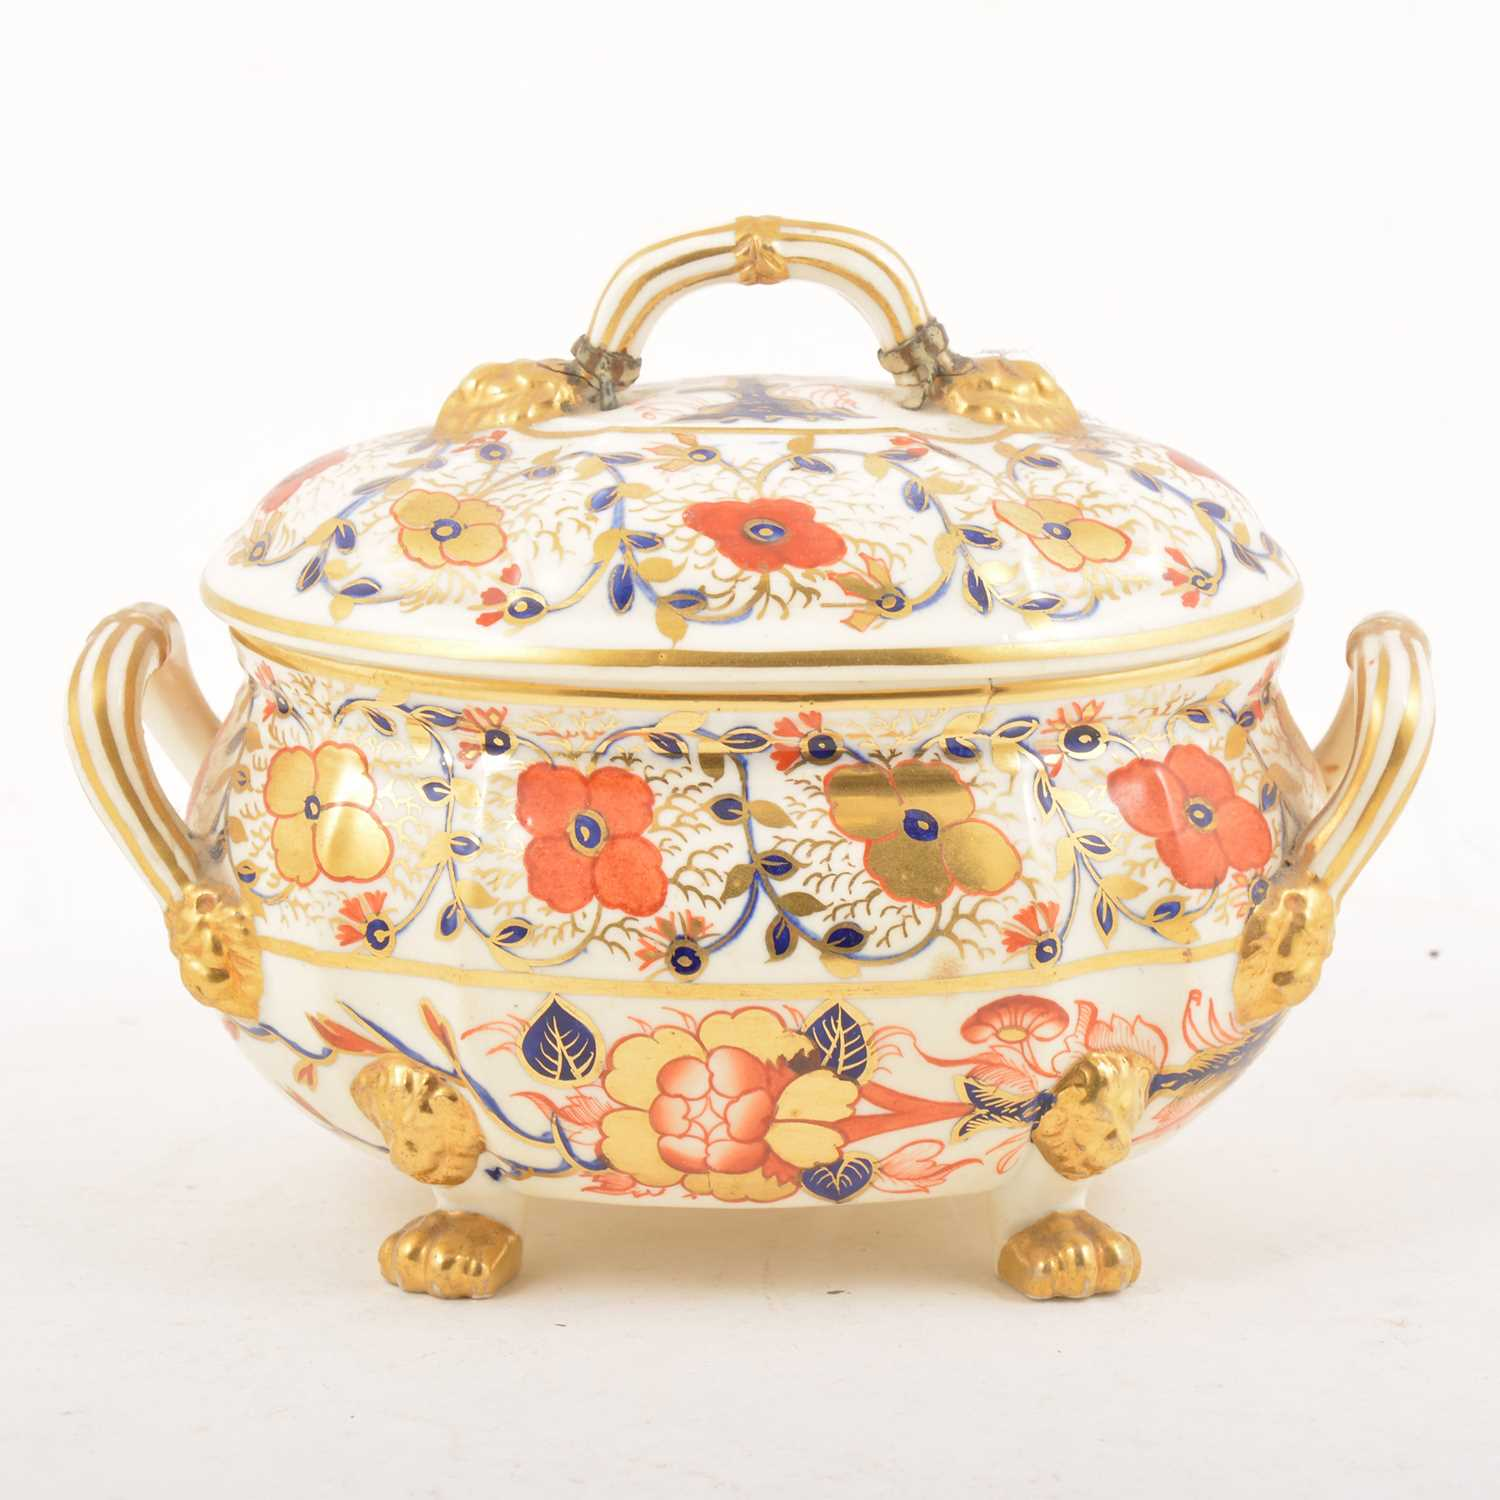 Lot 4 - A Royal Crown Derby Imari pattern tureen and cover